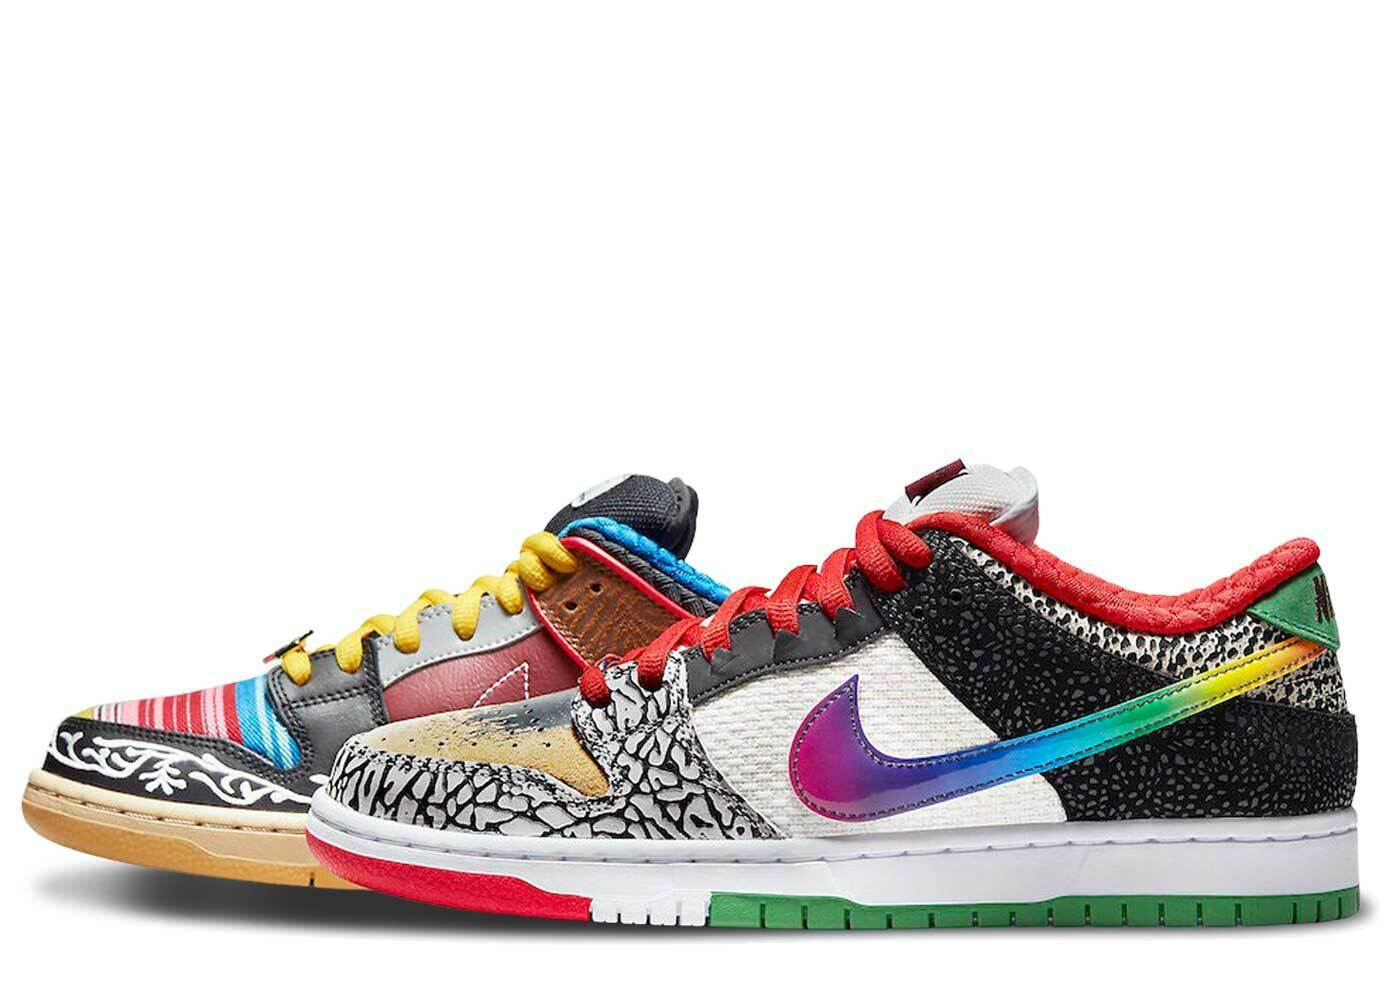 Nike SB Dunk Low What The P-Rodの写真